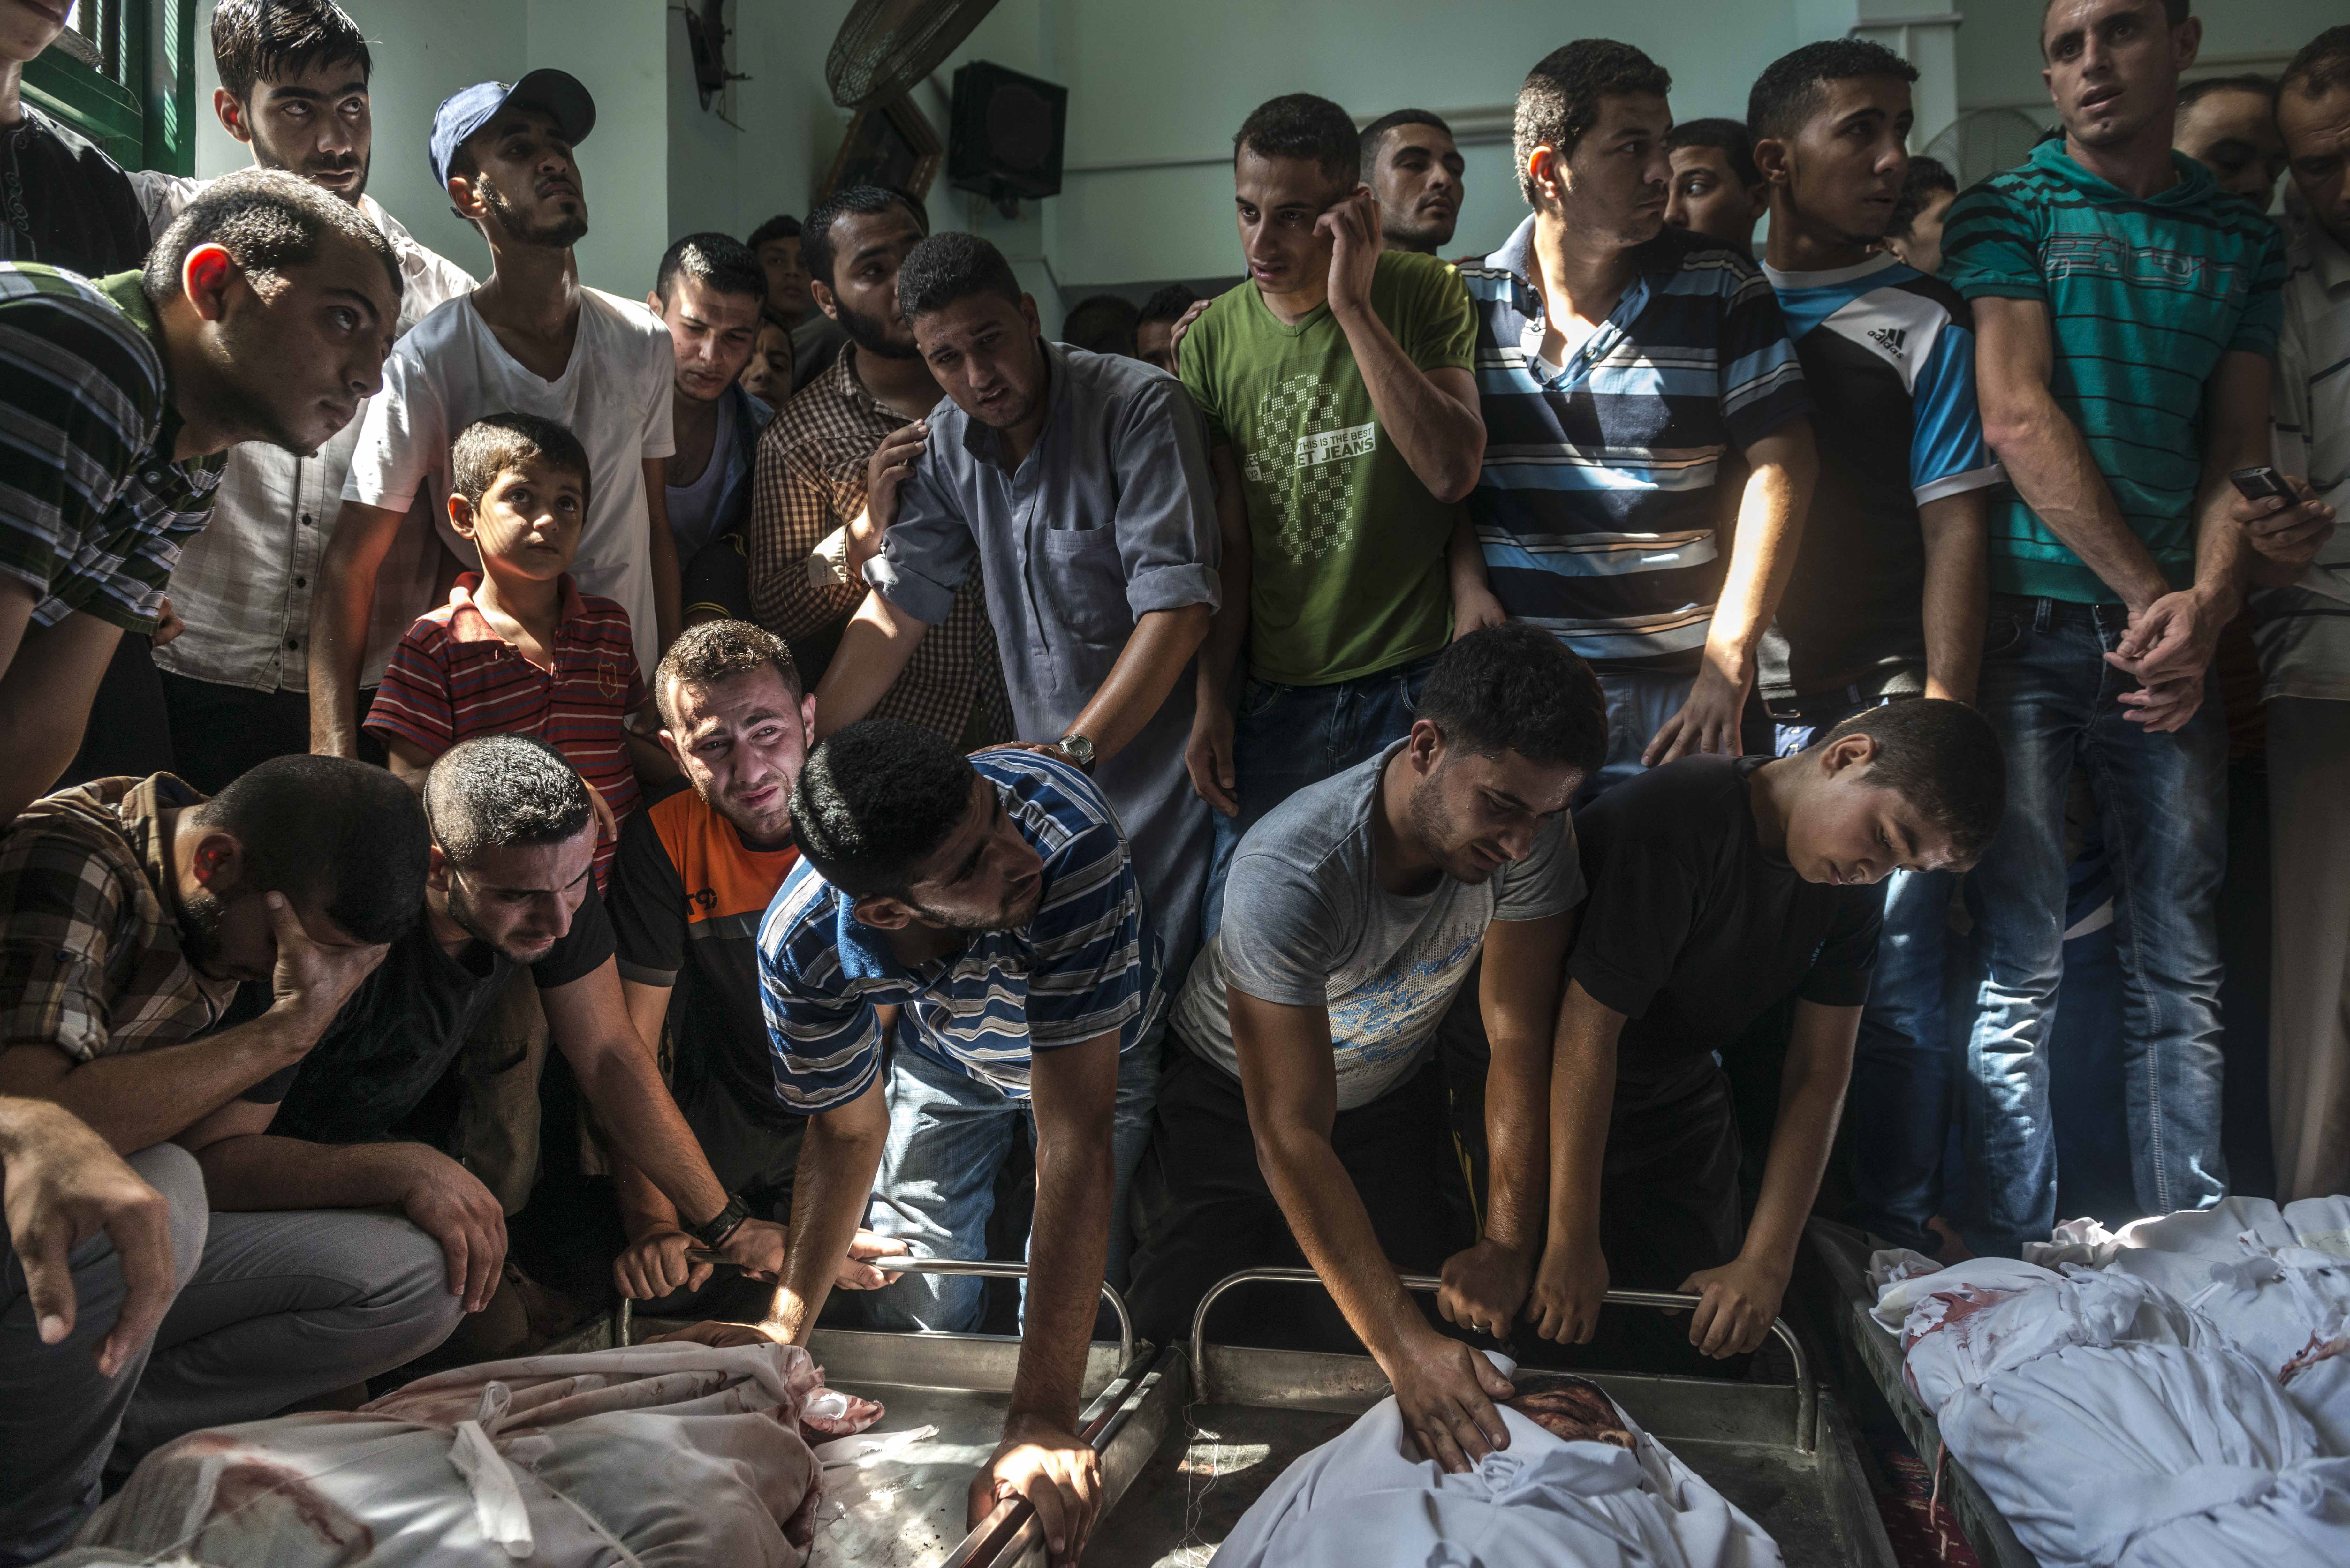 Aug. 4, 2014. Palestinians mourn over the Nigim family, reportedly killed in an airstrike in Jabaliya on the Gaza Strip.